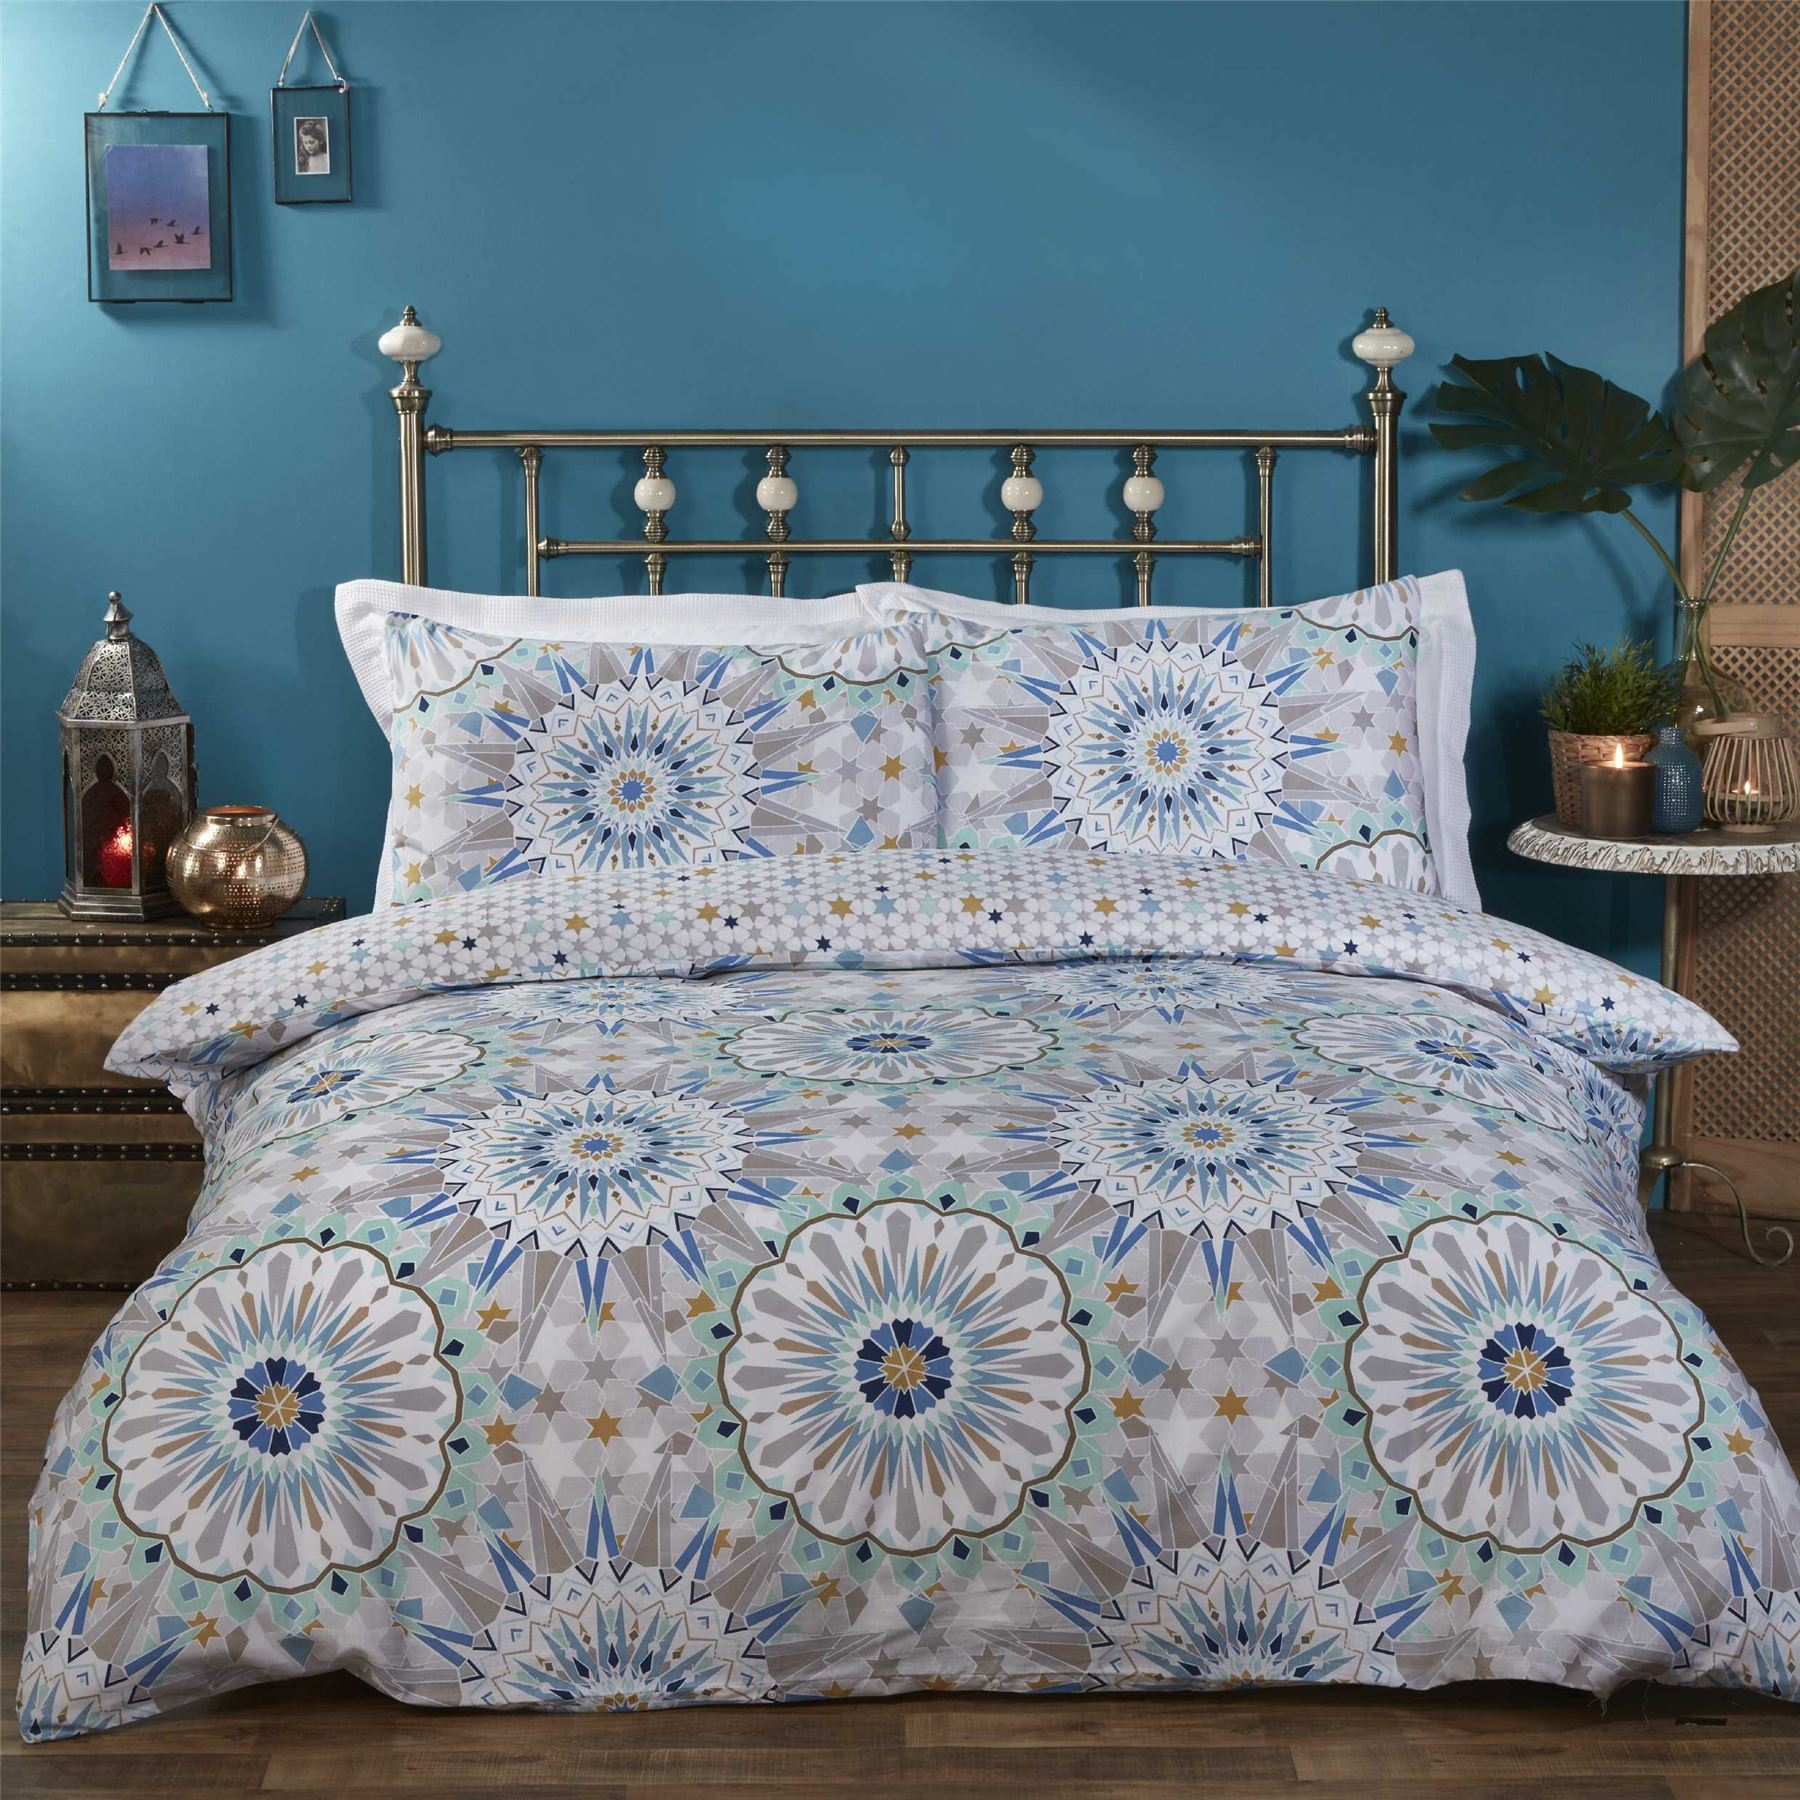 sets cases cover inc pillow luxury boho and bohemian itm covers quilt moroccan duvet with two medallion bedding set